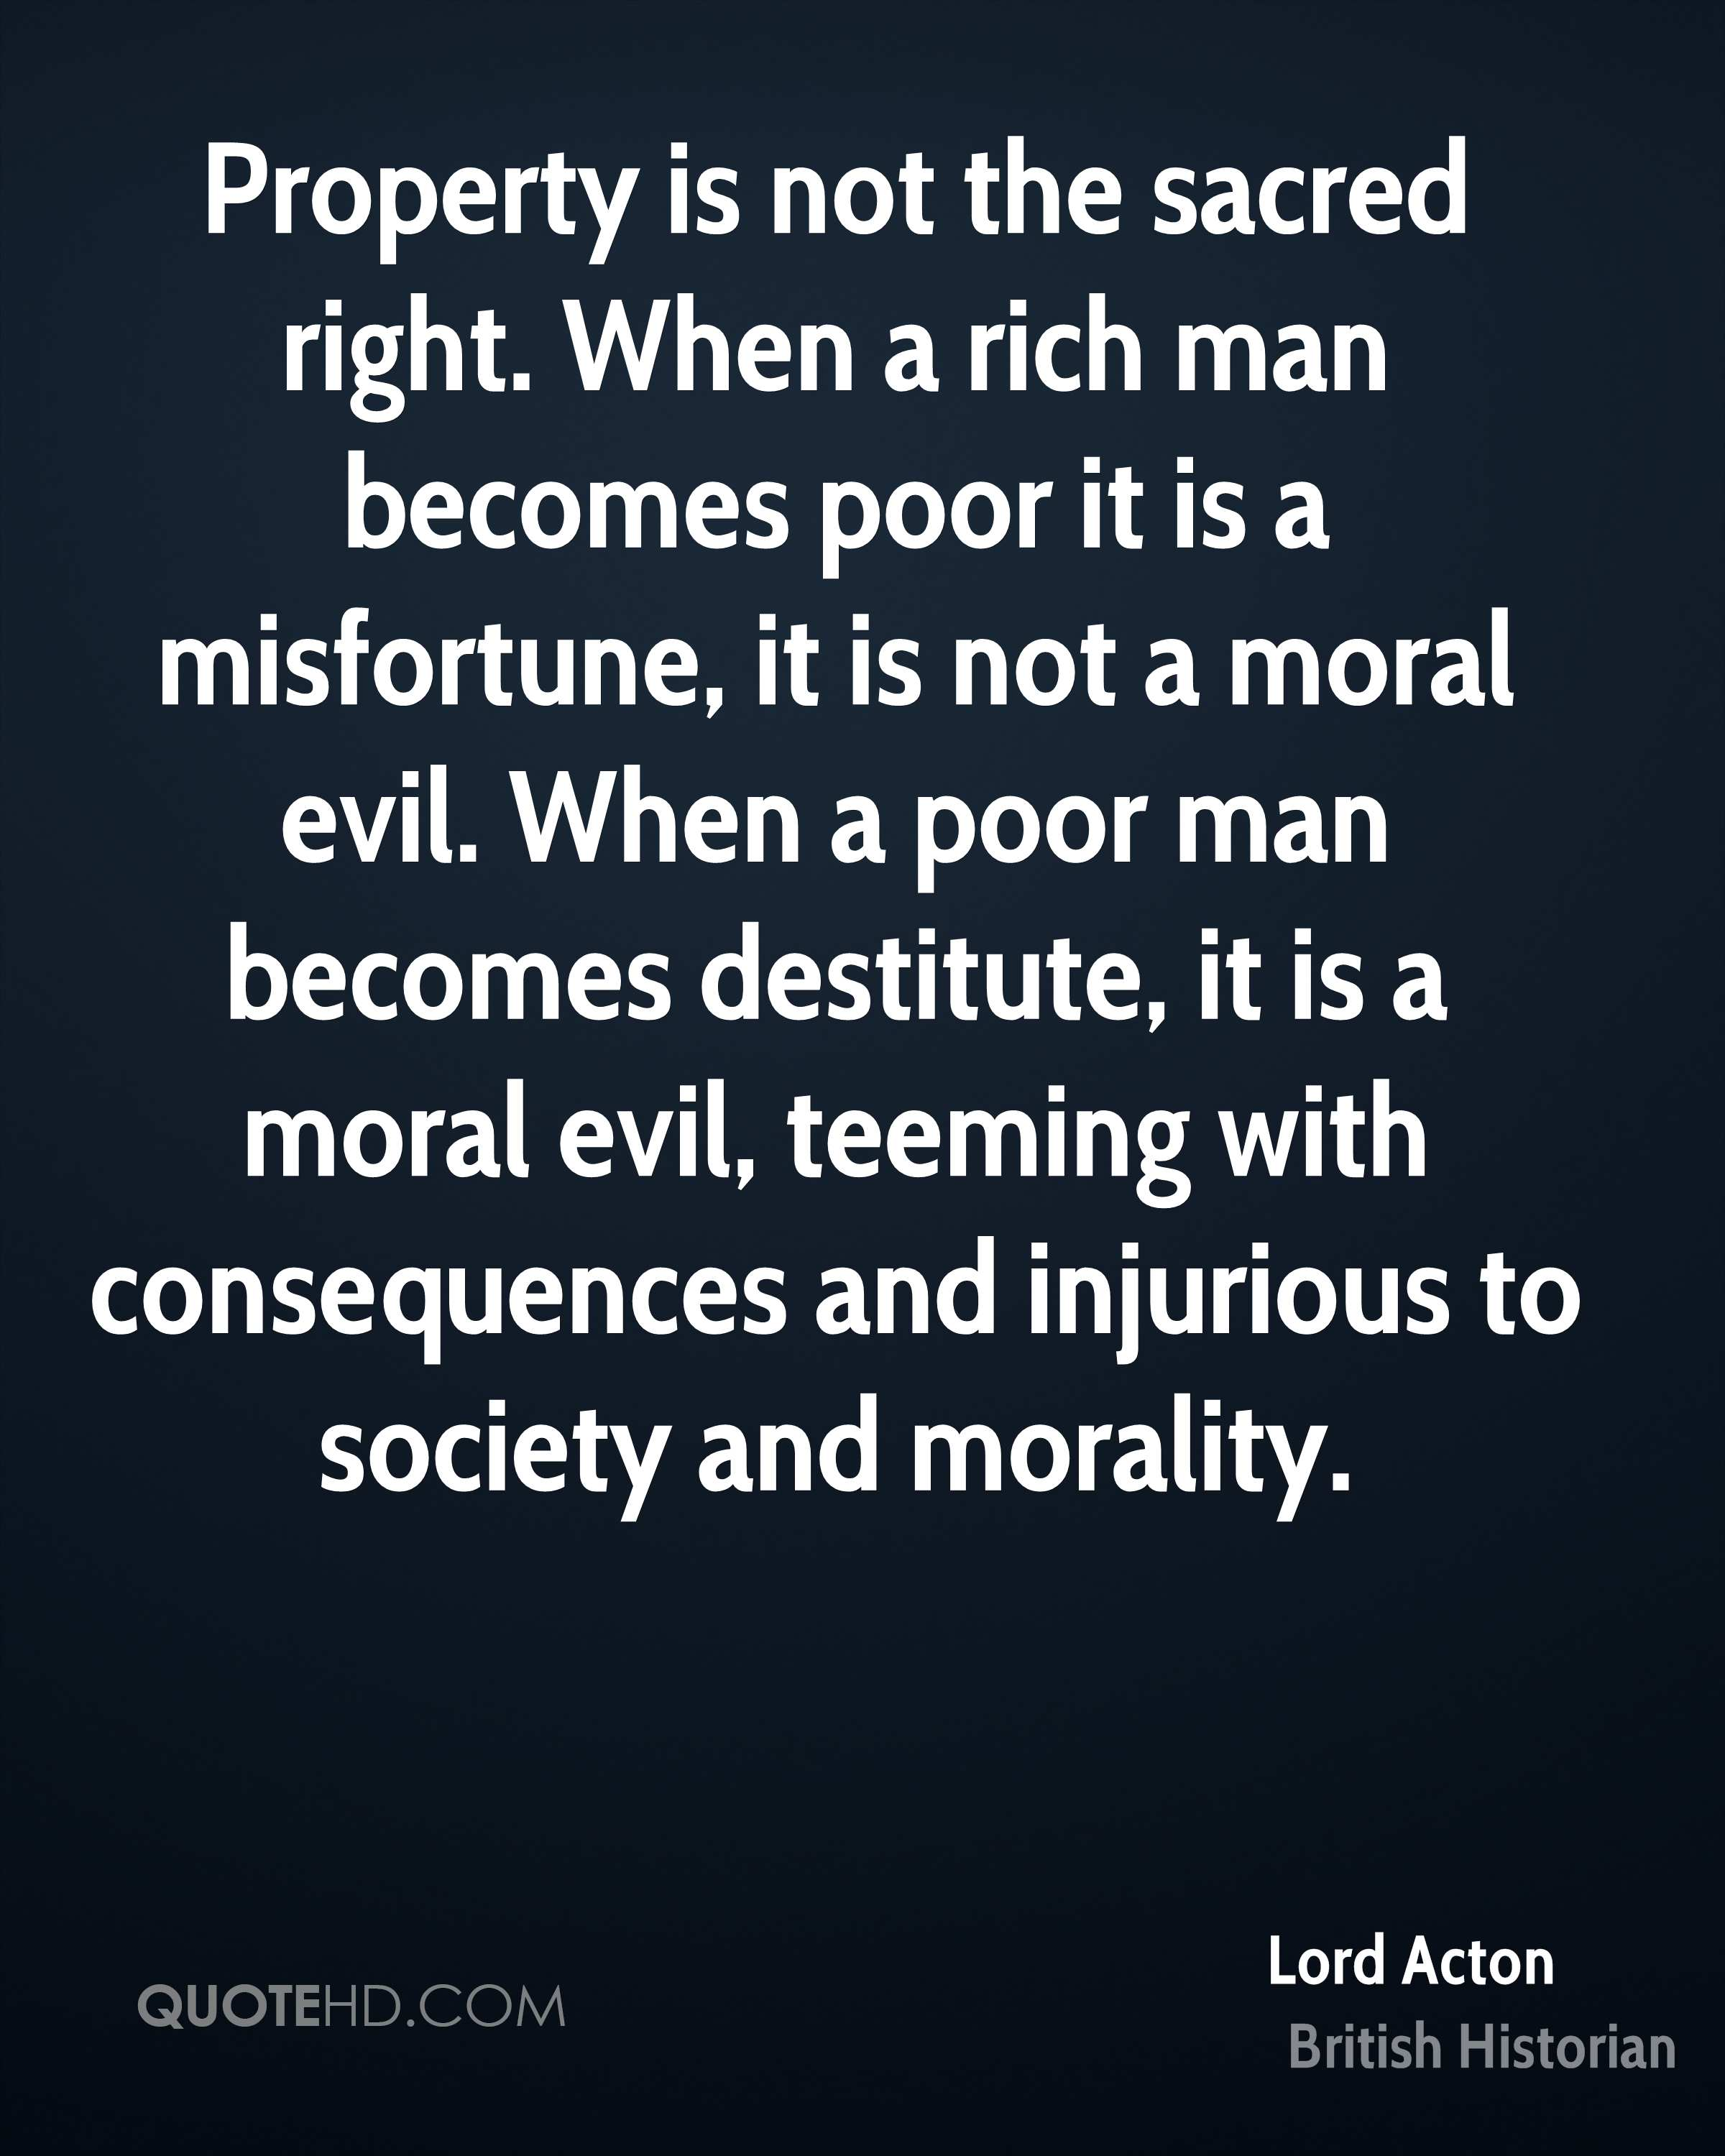 Property is not the sacred right. When a rich man becomes poor it is a misfortune, it is not a moral evil. When a poor man becomes destitute, it is a moral evil, teeming with consequences and injurious to society and morality.